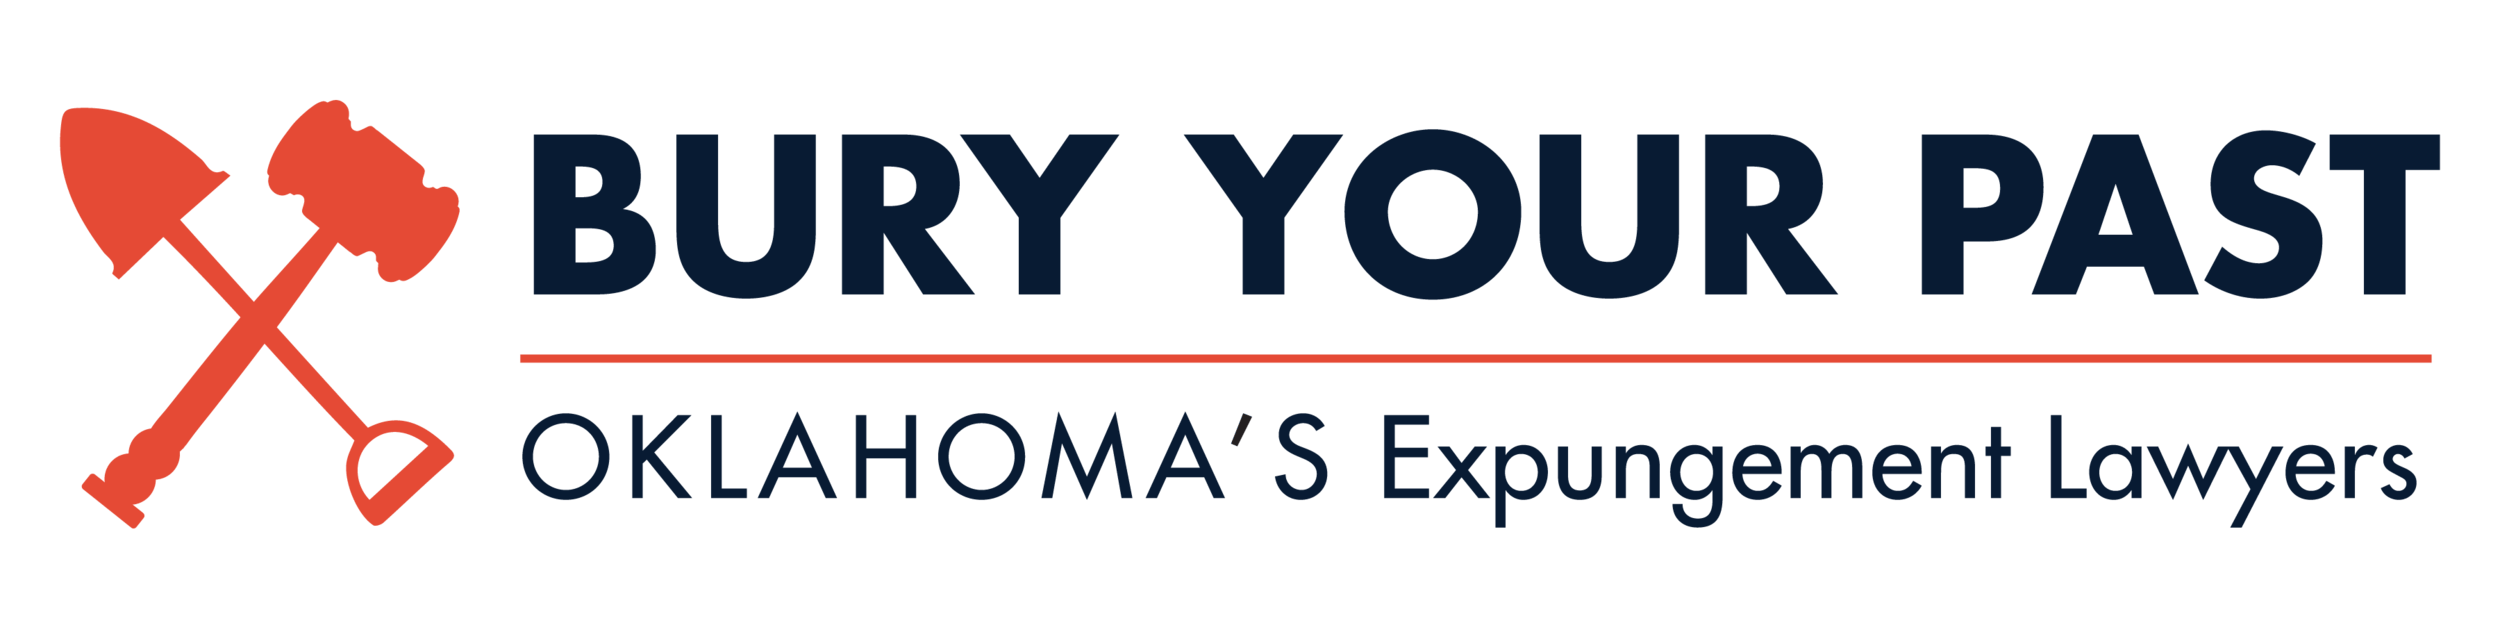 About Bury Your Past - Oklahoma Expungement Attorneys